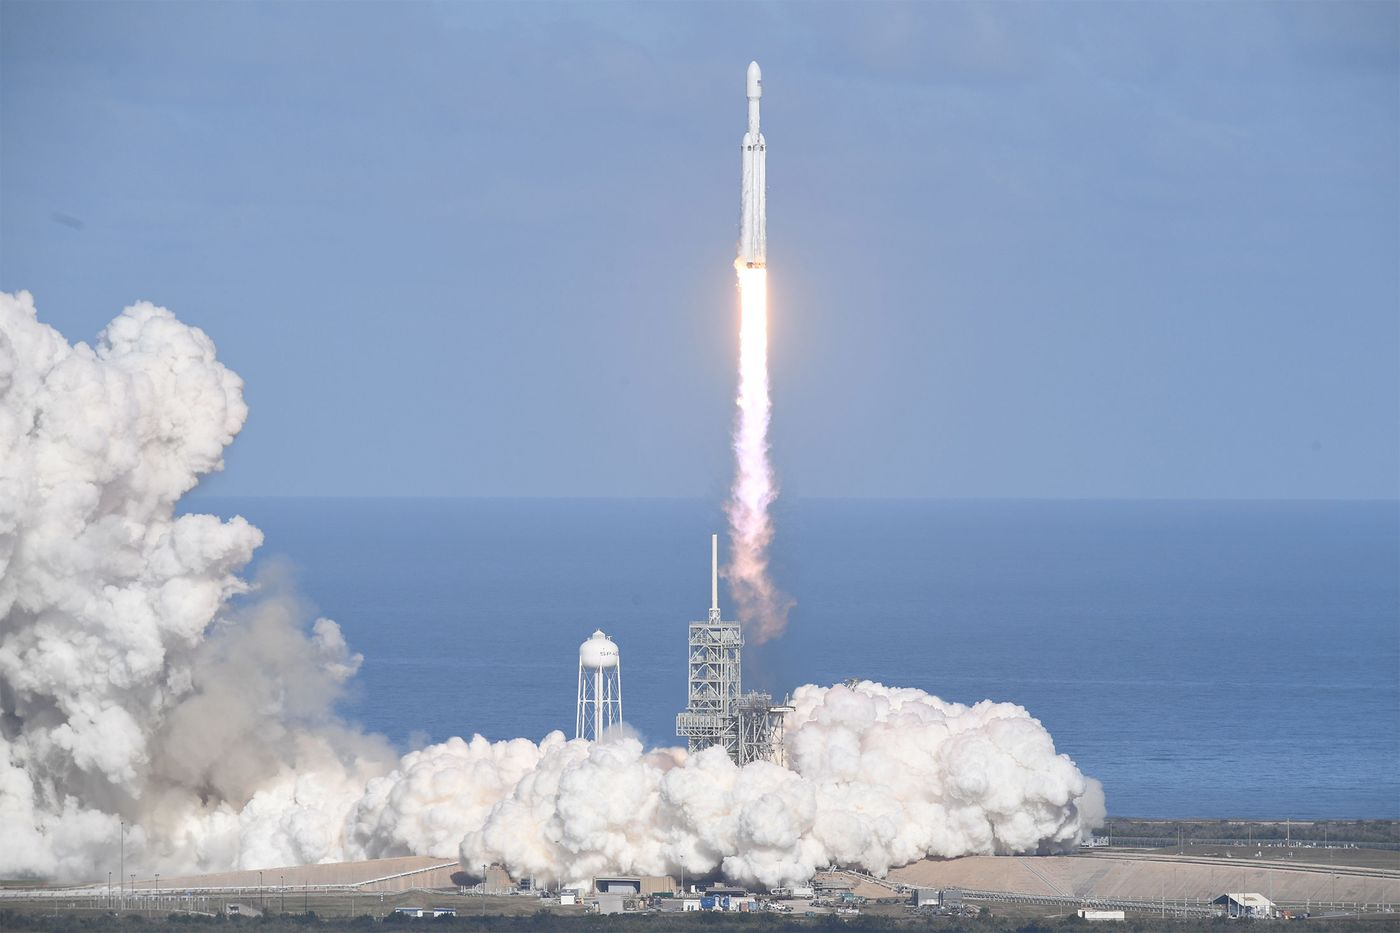 SpaceX's Giant Falcon Heavy Rocket Takes Off for the First Time